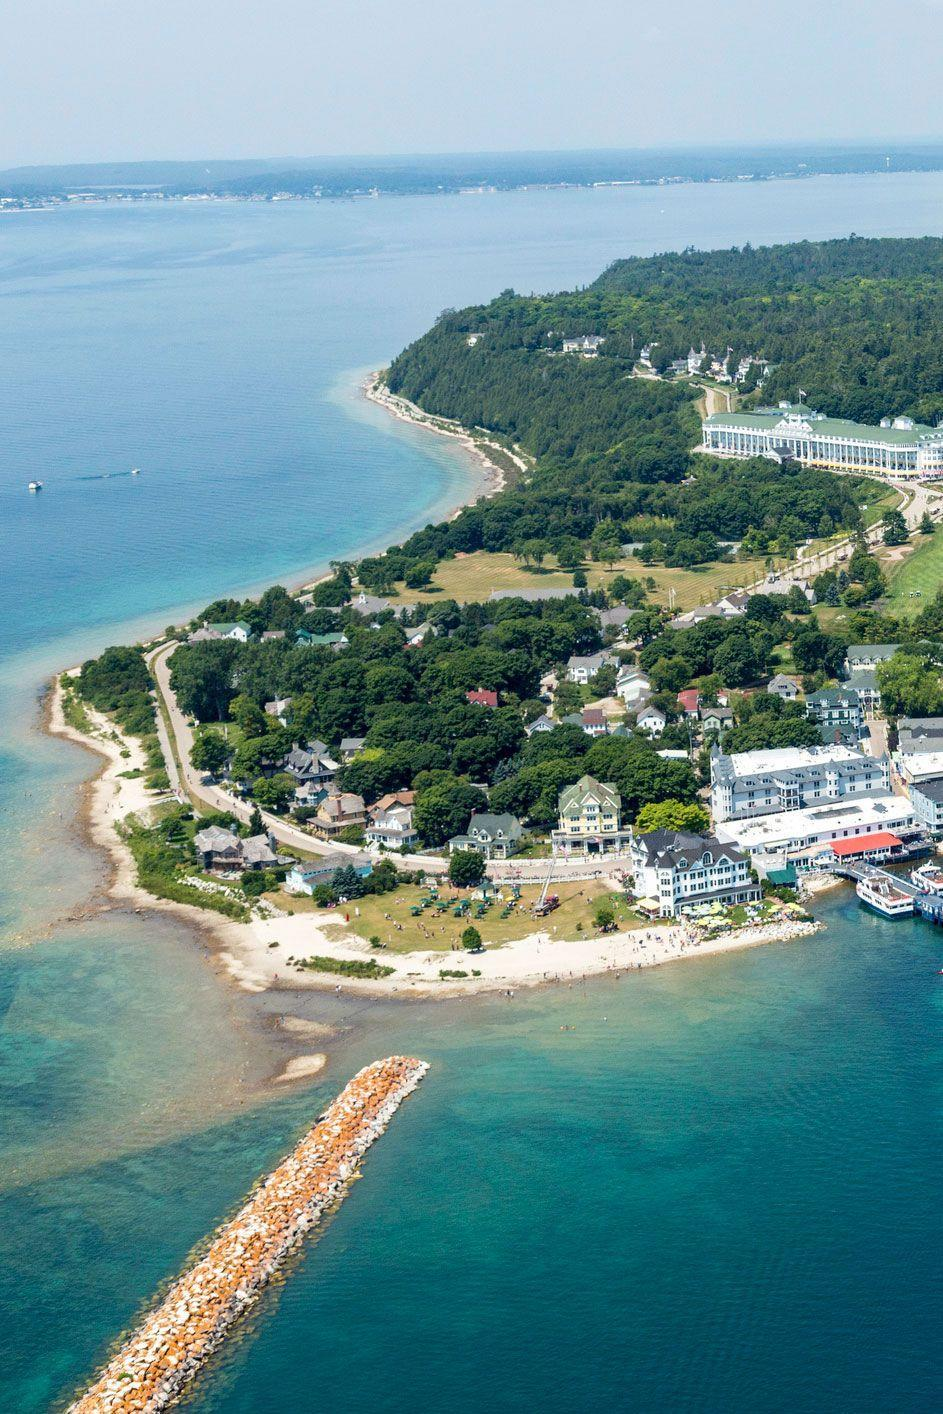 """<p><strong>Where: </strong>Mackinac Island, Michigan</p><p><strong>Why We Love It: </strong>No cars are allowed on <a href=""""https://www.countryliving.com/life/travel/g4135/american-islands/"""" rel=""""nofollow noopener"""" target=""""_blank"""" data-ylk=""""slk:this small island"""" class=""""link rapid-noclick-resp"""">this small island</a> on the strait between Michigan's upper and lower peninsulas, making it an idyllic summer getaway.</p>"""